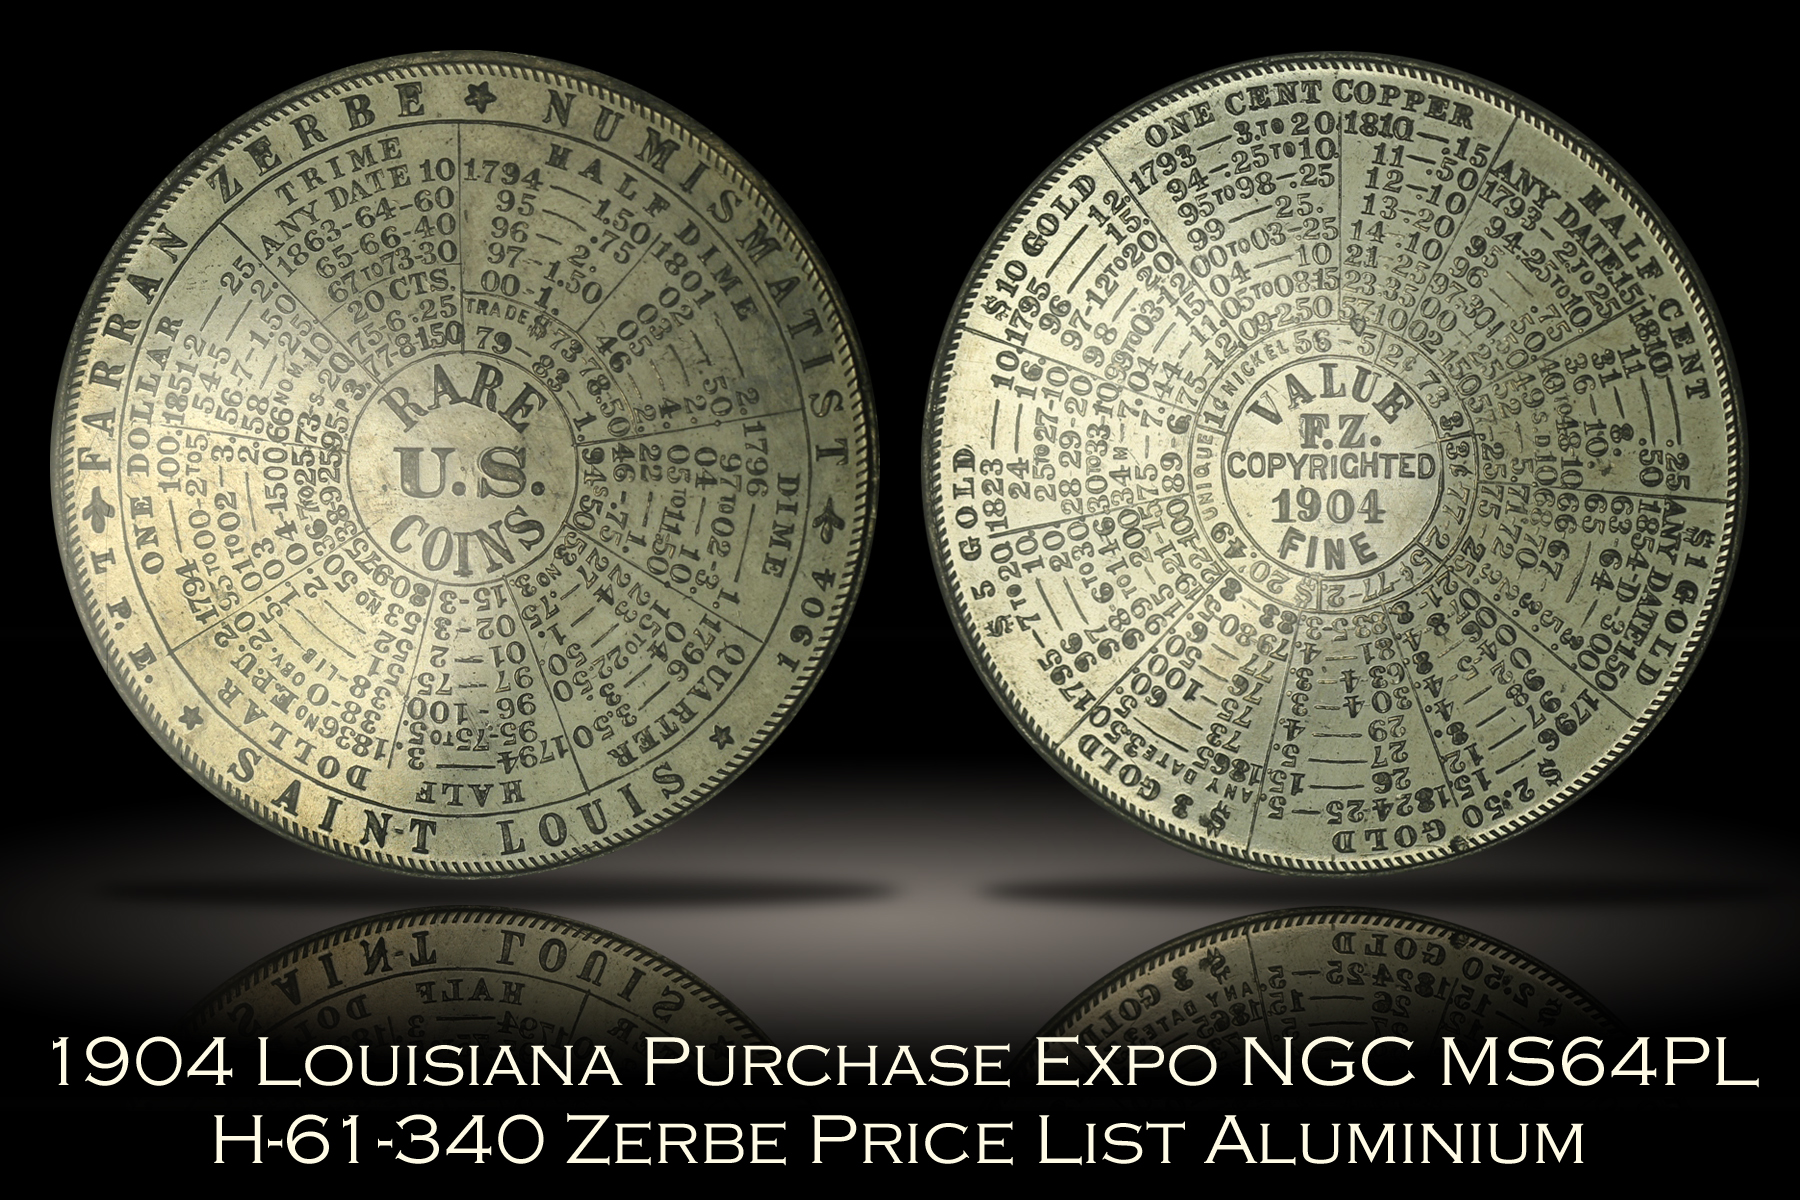 1904 Louisiana Purchase Expo Zerbe Price List Medal H-61-340 NGC MS64PL